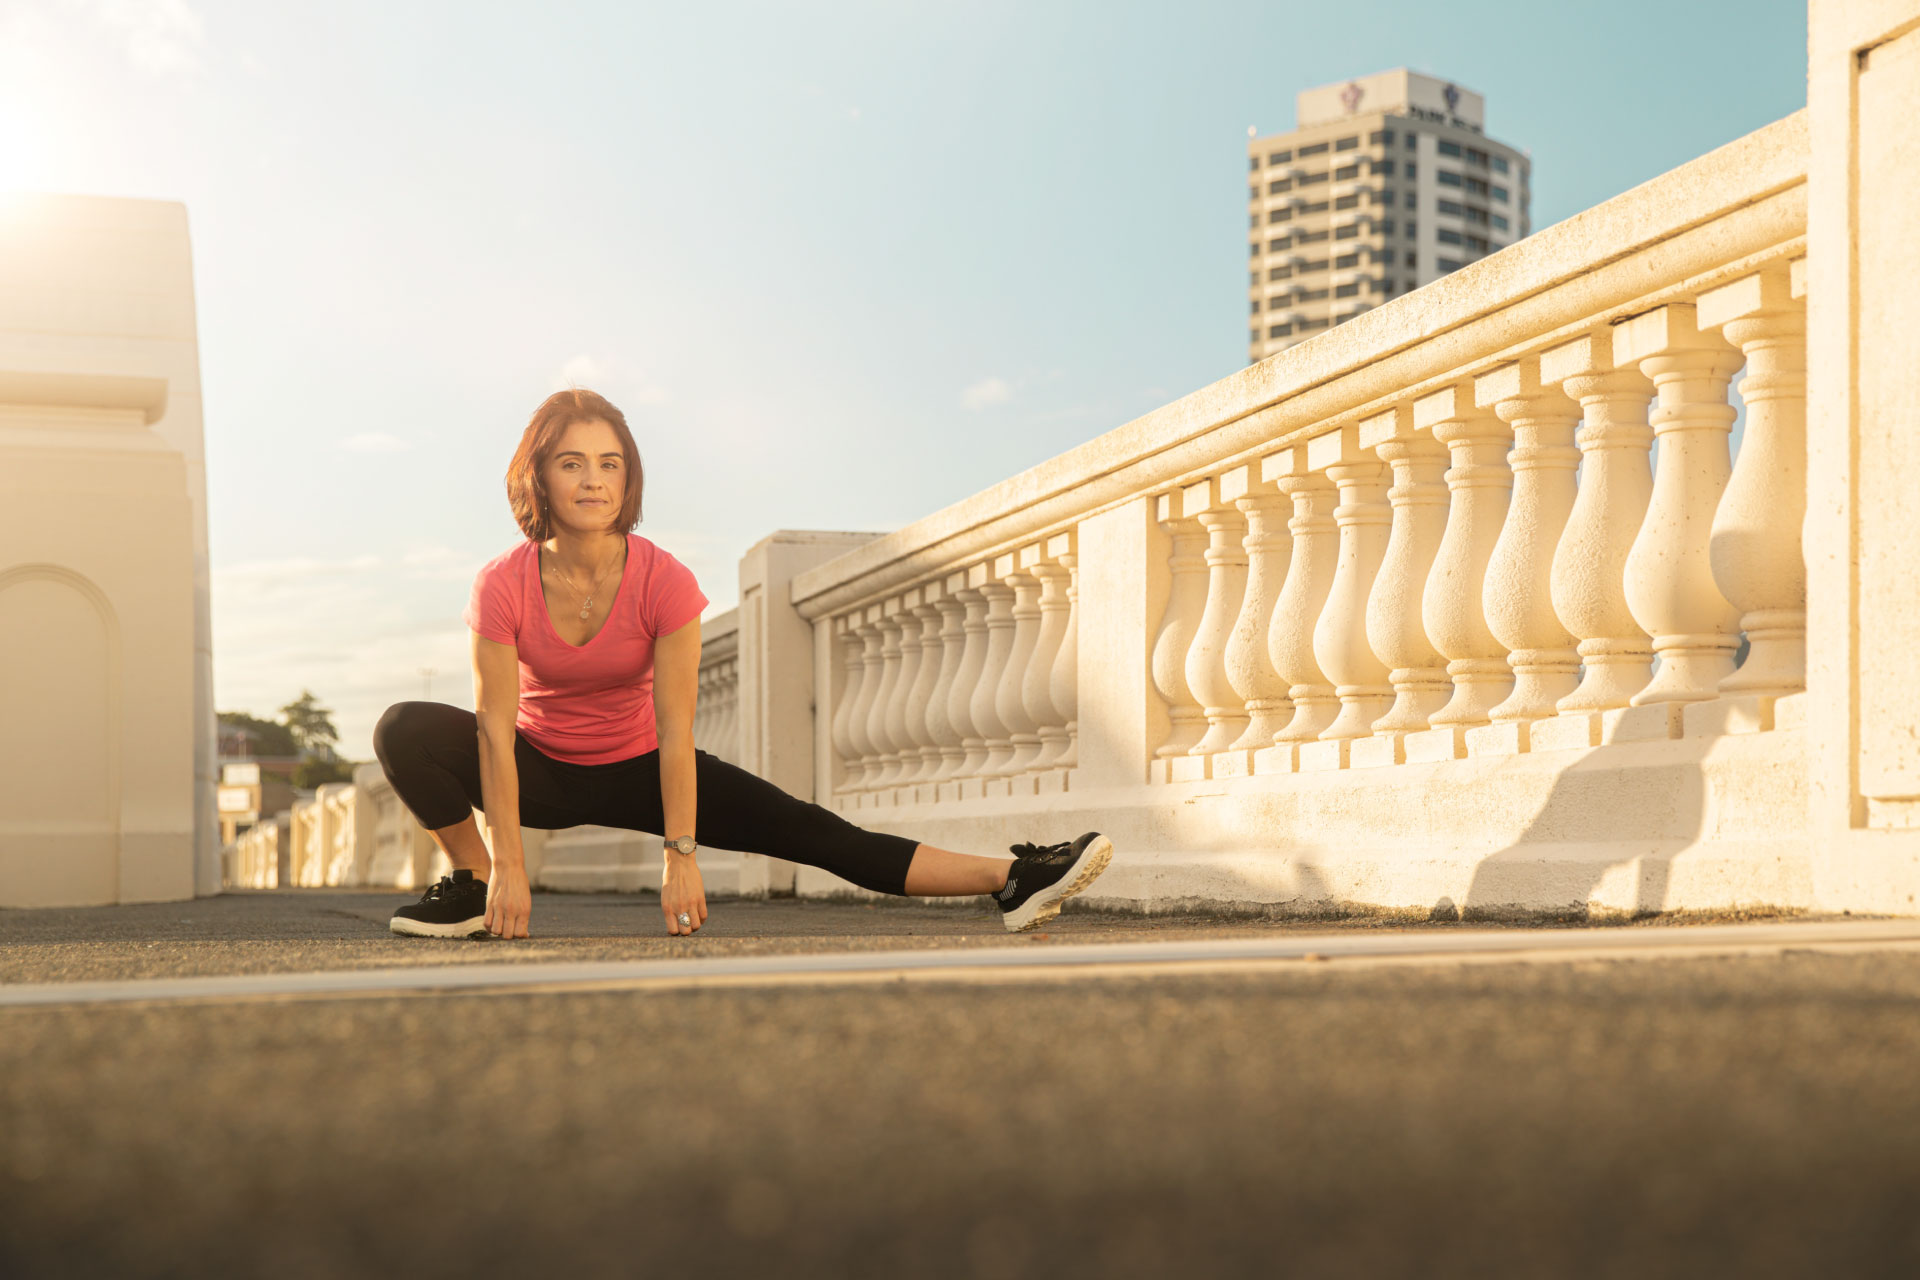 About personal training